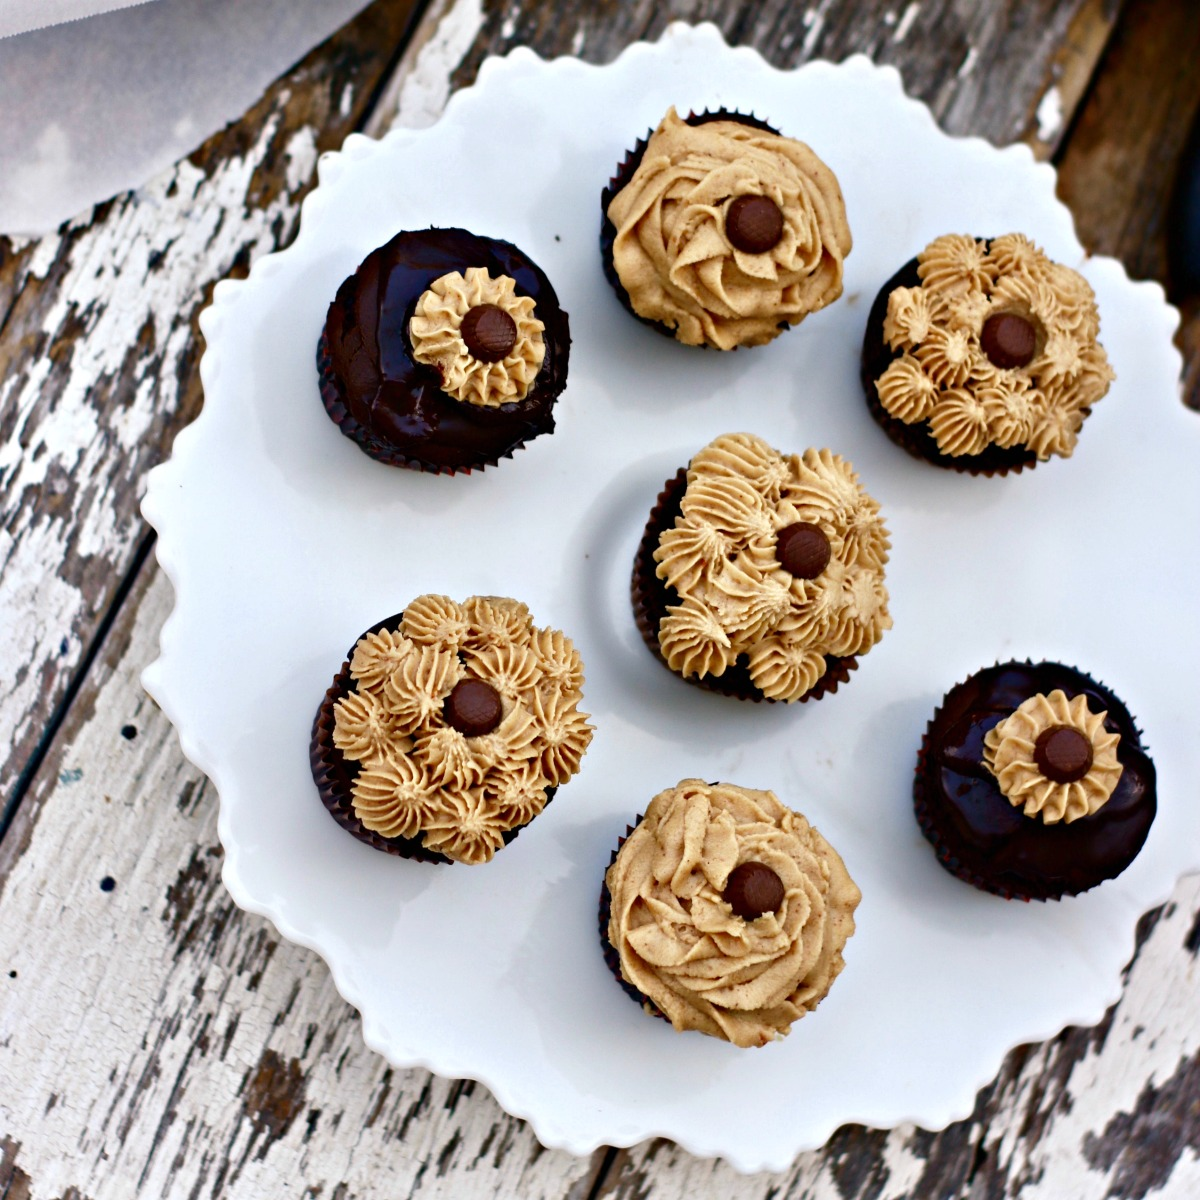 Peanut Butter Filled cupcakes from Spinach TIger